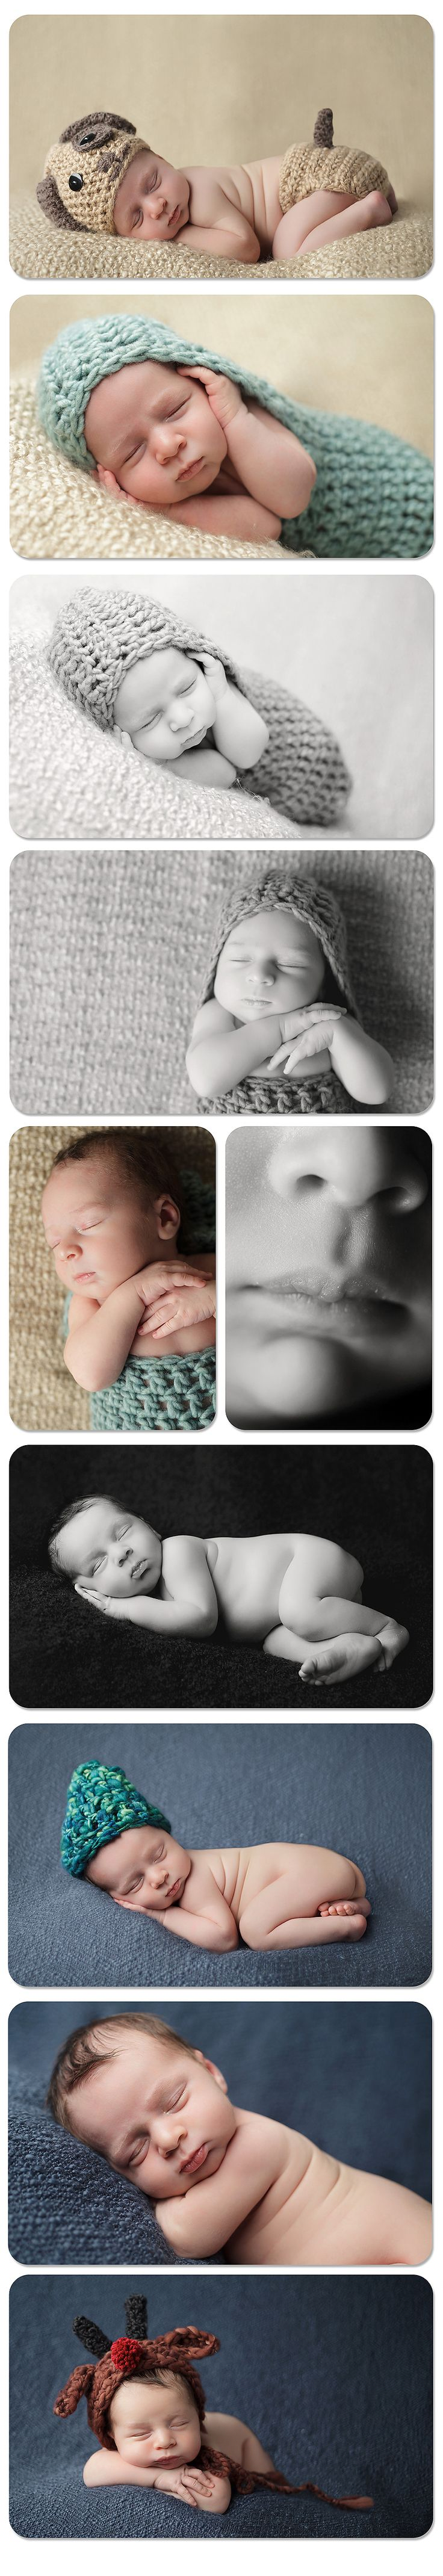 newborn boy - I want the doggie from the top pic for my baby boy!